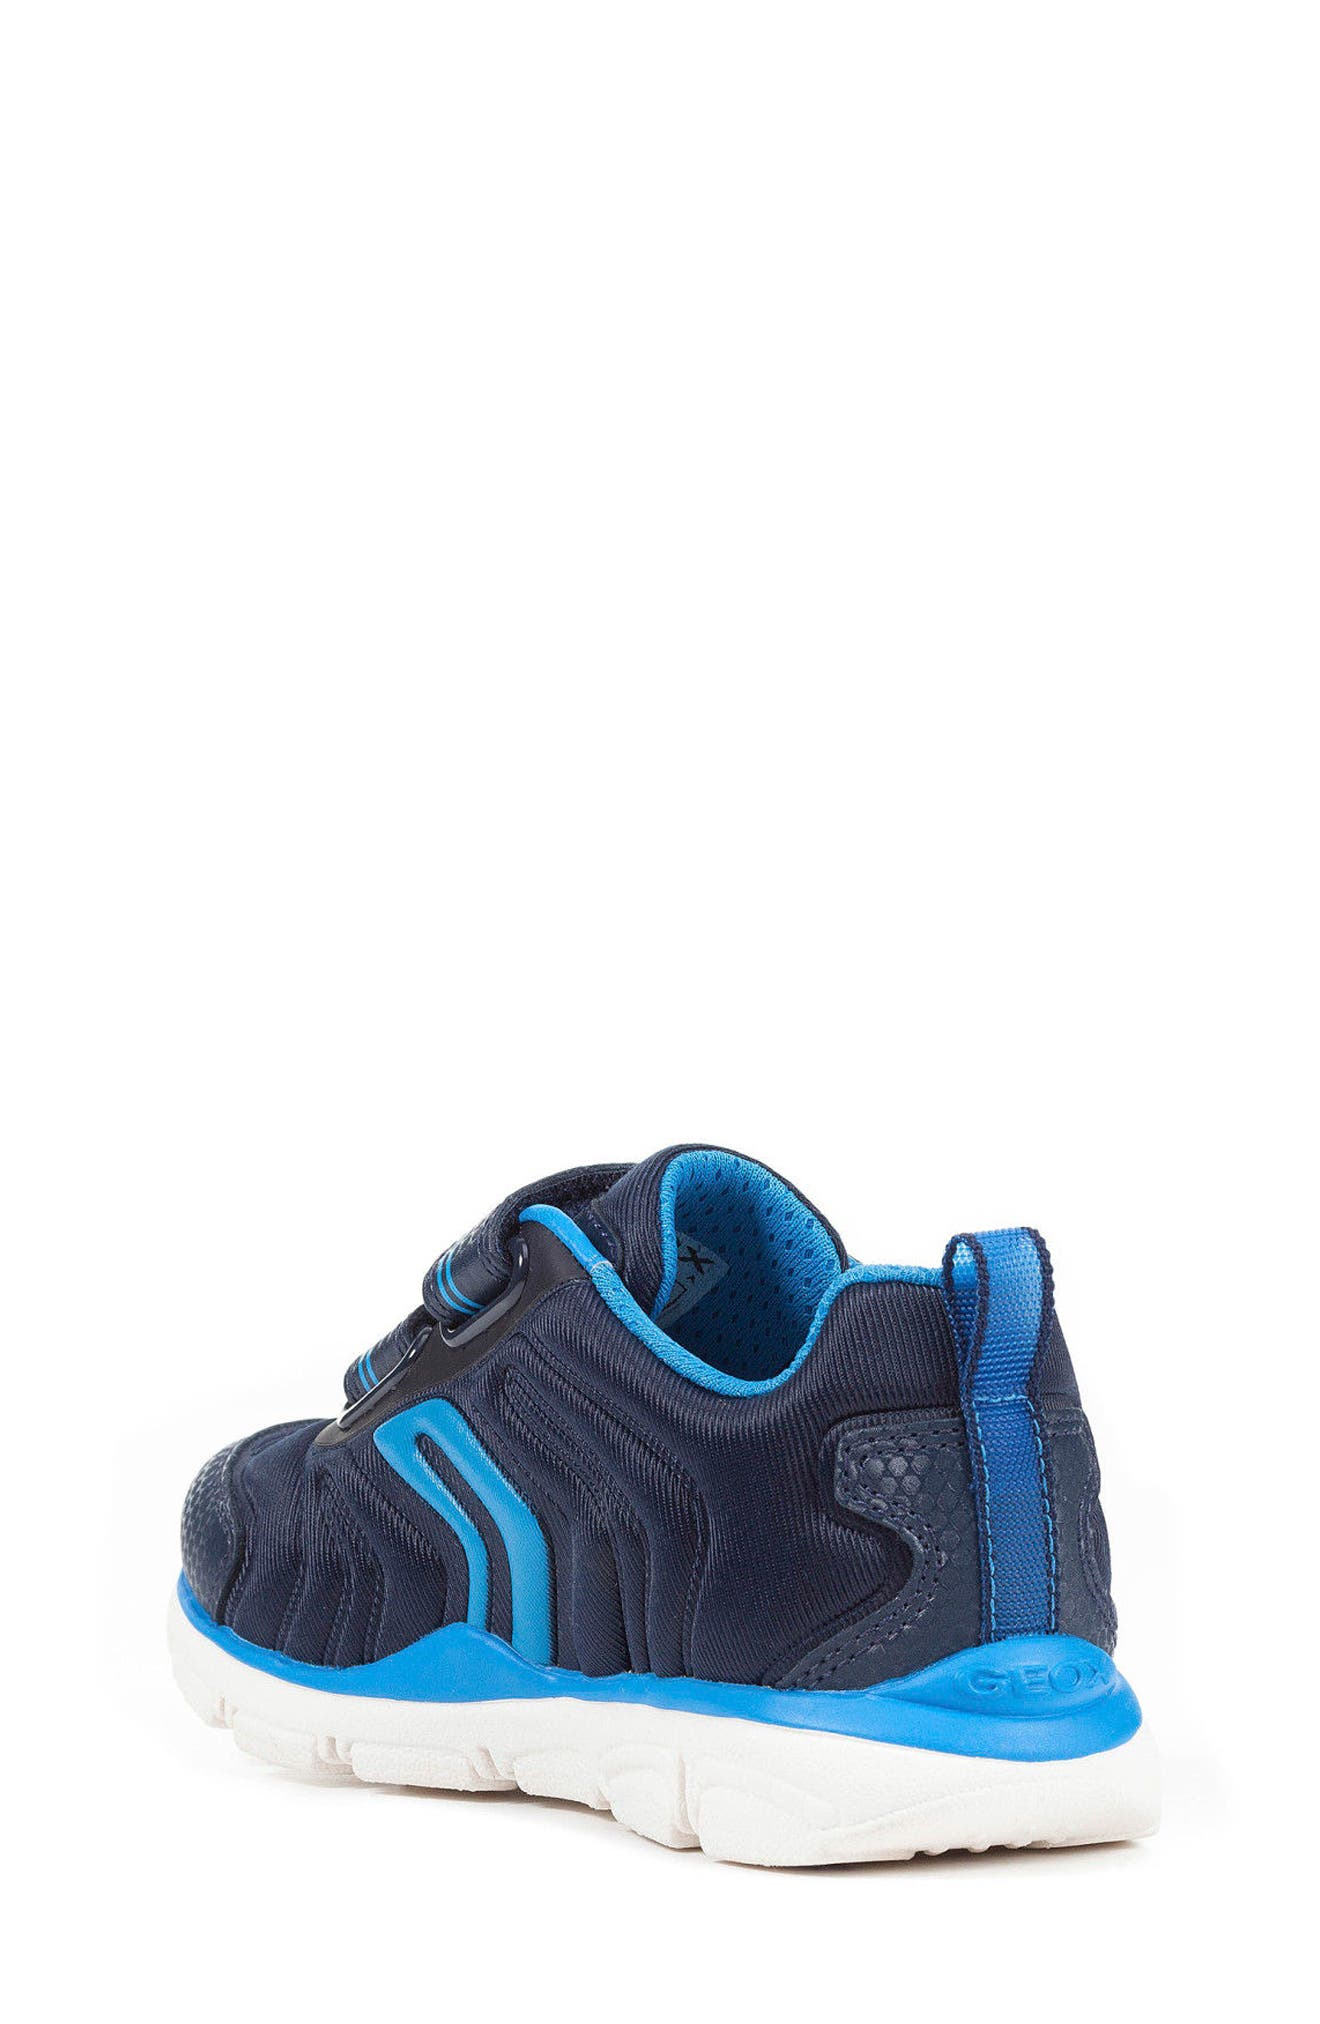 Torque Sneaker,                             Alternate thumbnail 2, color,                             Navy